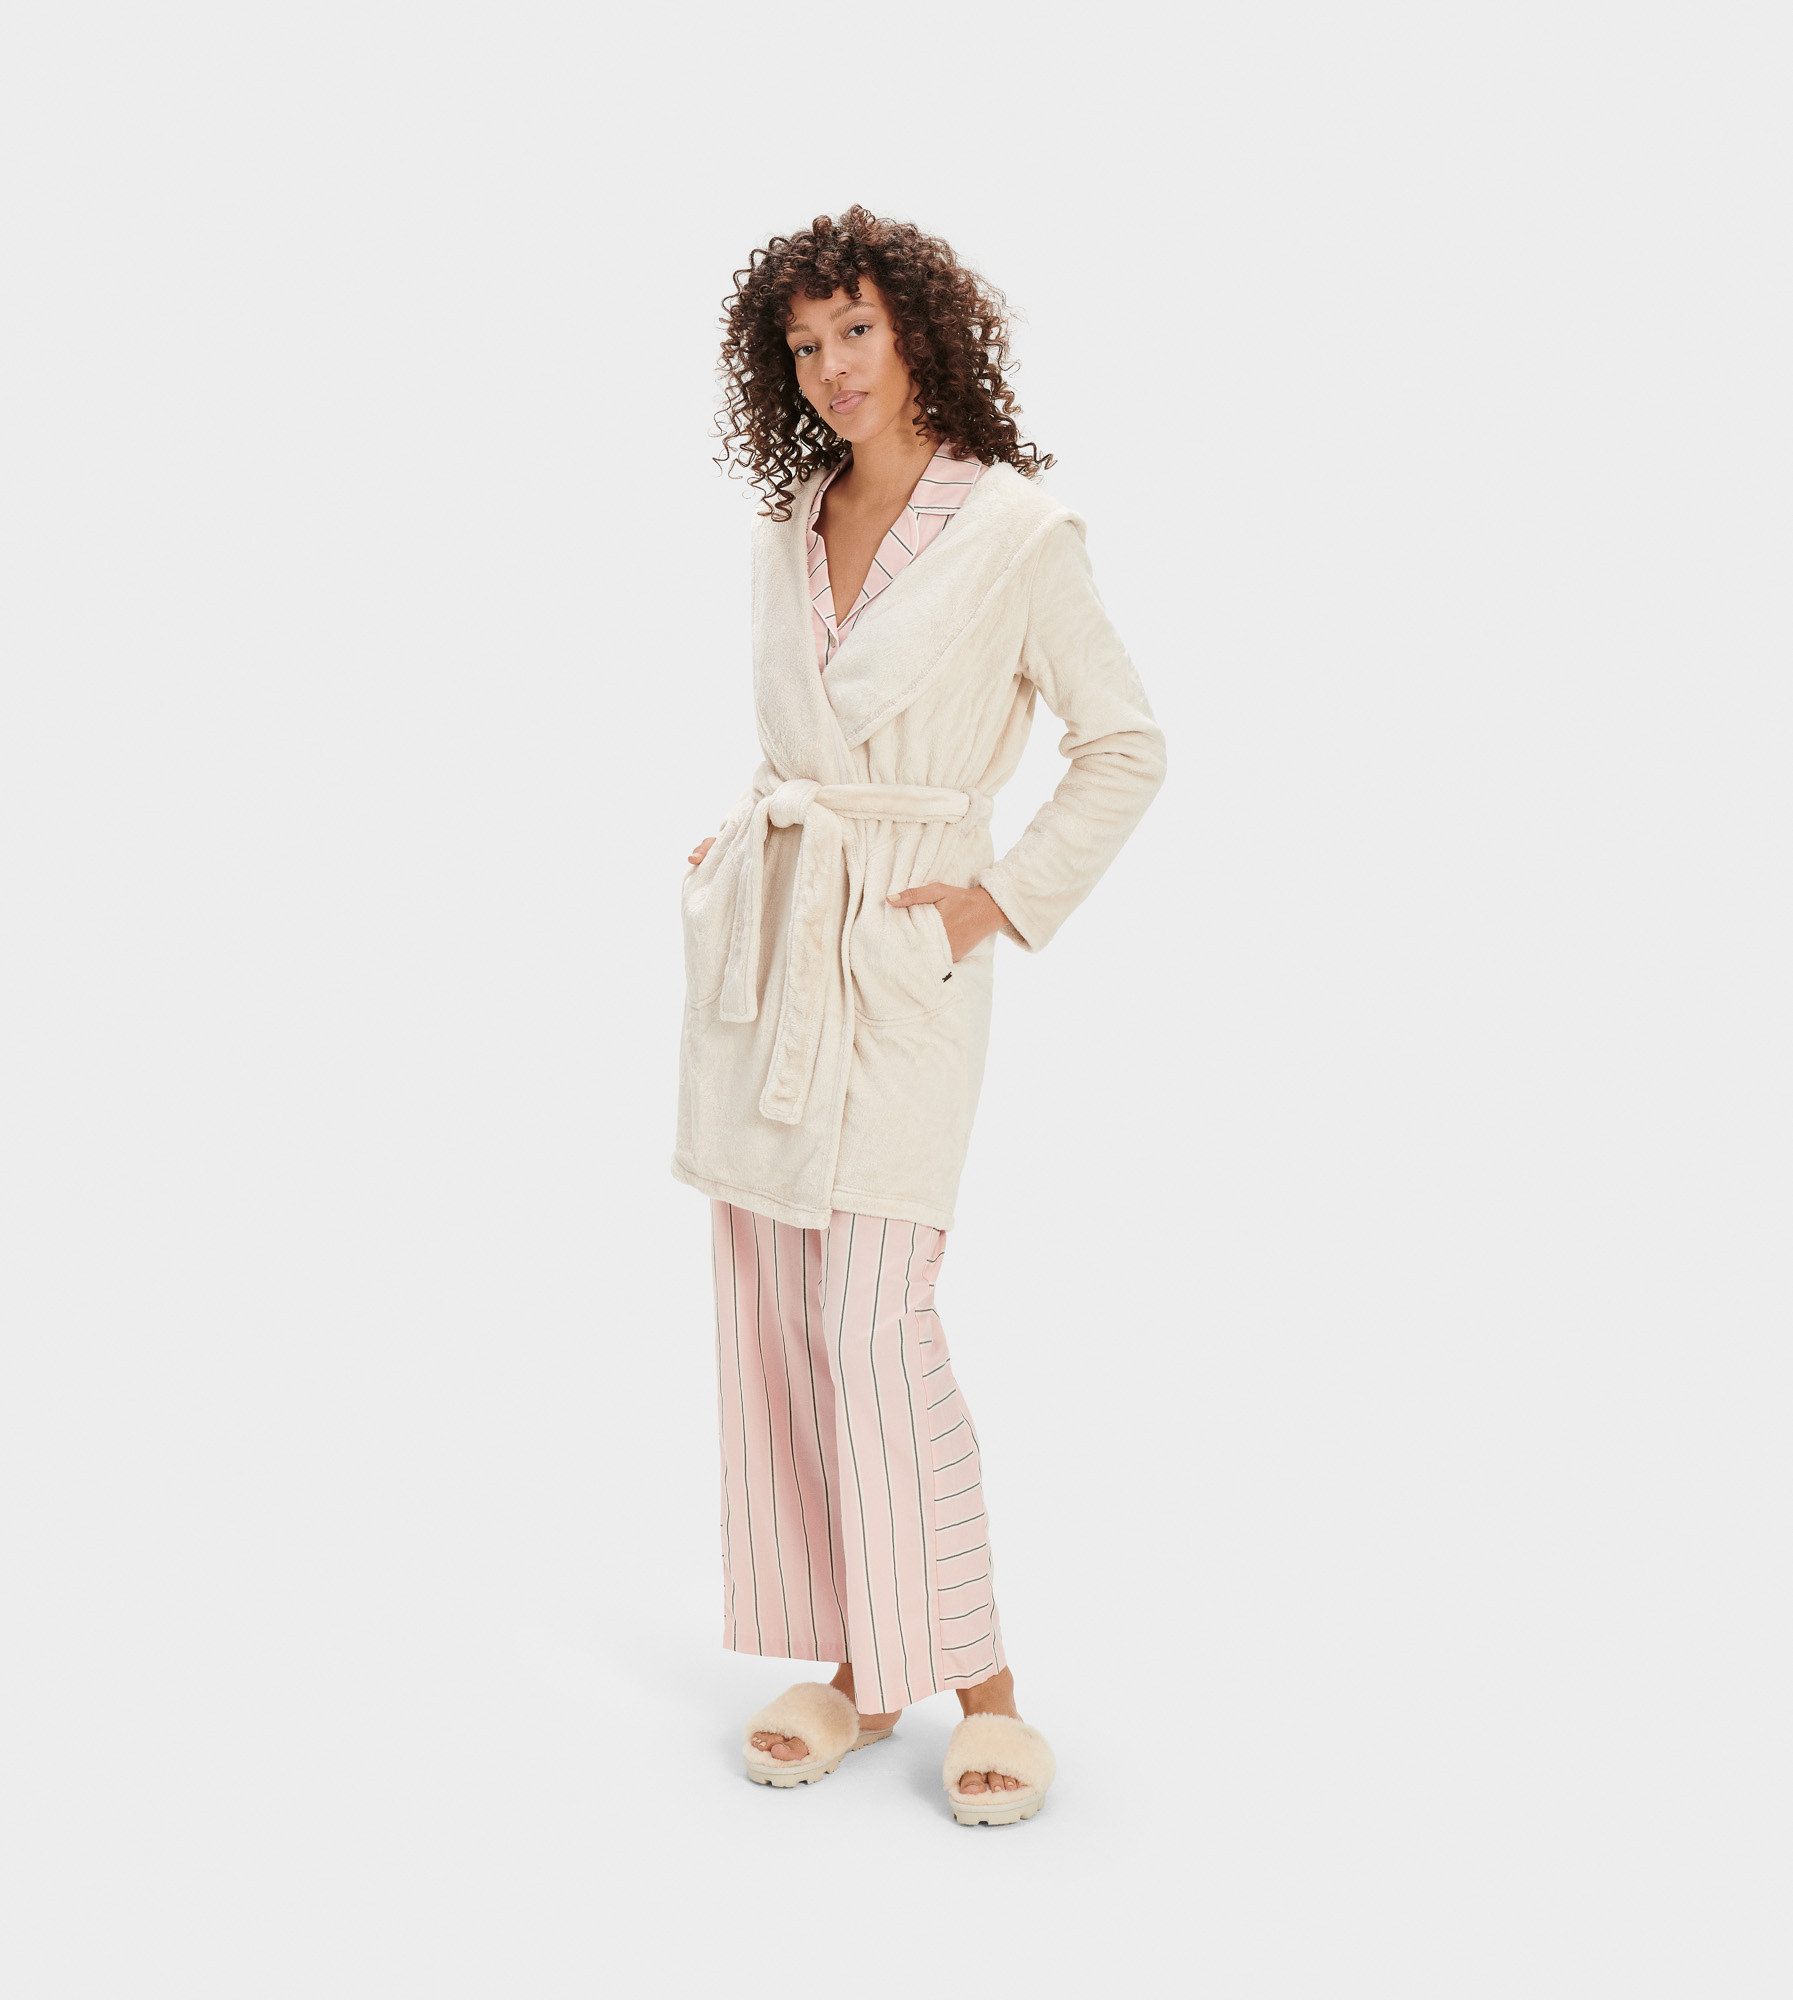 UGG Women's Miranda Fleece Robe Sleepwear in White, Size L Made from a silky double-face fleece knit, this irresistibly soft robe has the power to turn a lazy day at home into a rejuvenating staycation. Double Face Fleece Knit - 100% Polyester. Hooded shawl collar robe. On-seam side pockets. Self belt. Straight hem. UGG woven flag label at hand pocket. 36  center back length [Size S]. UGG Women's Miranda Fleece Robe Sleepwear in White, Size L